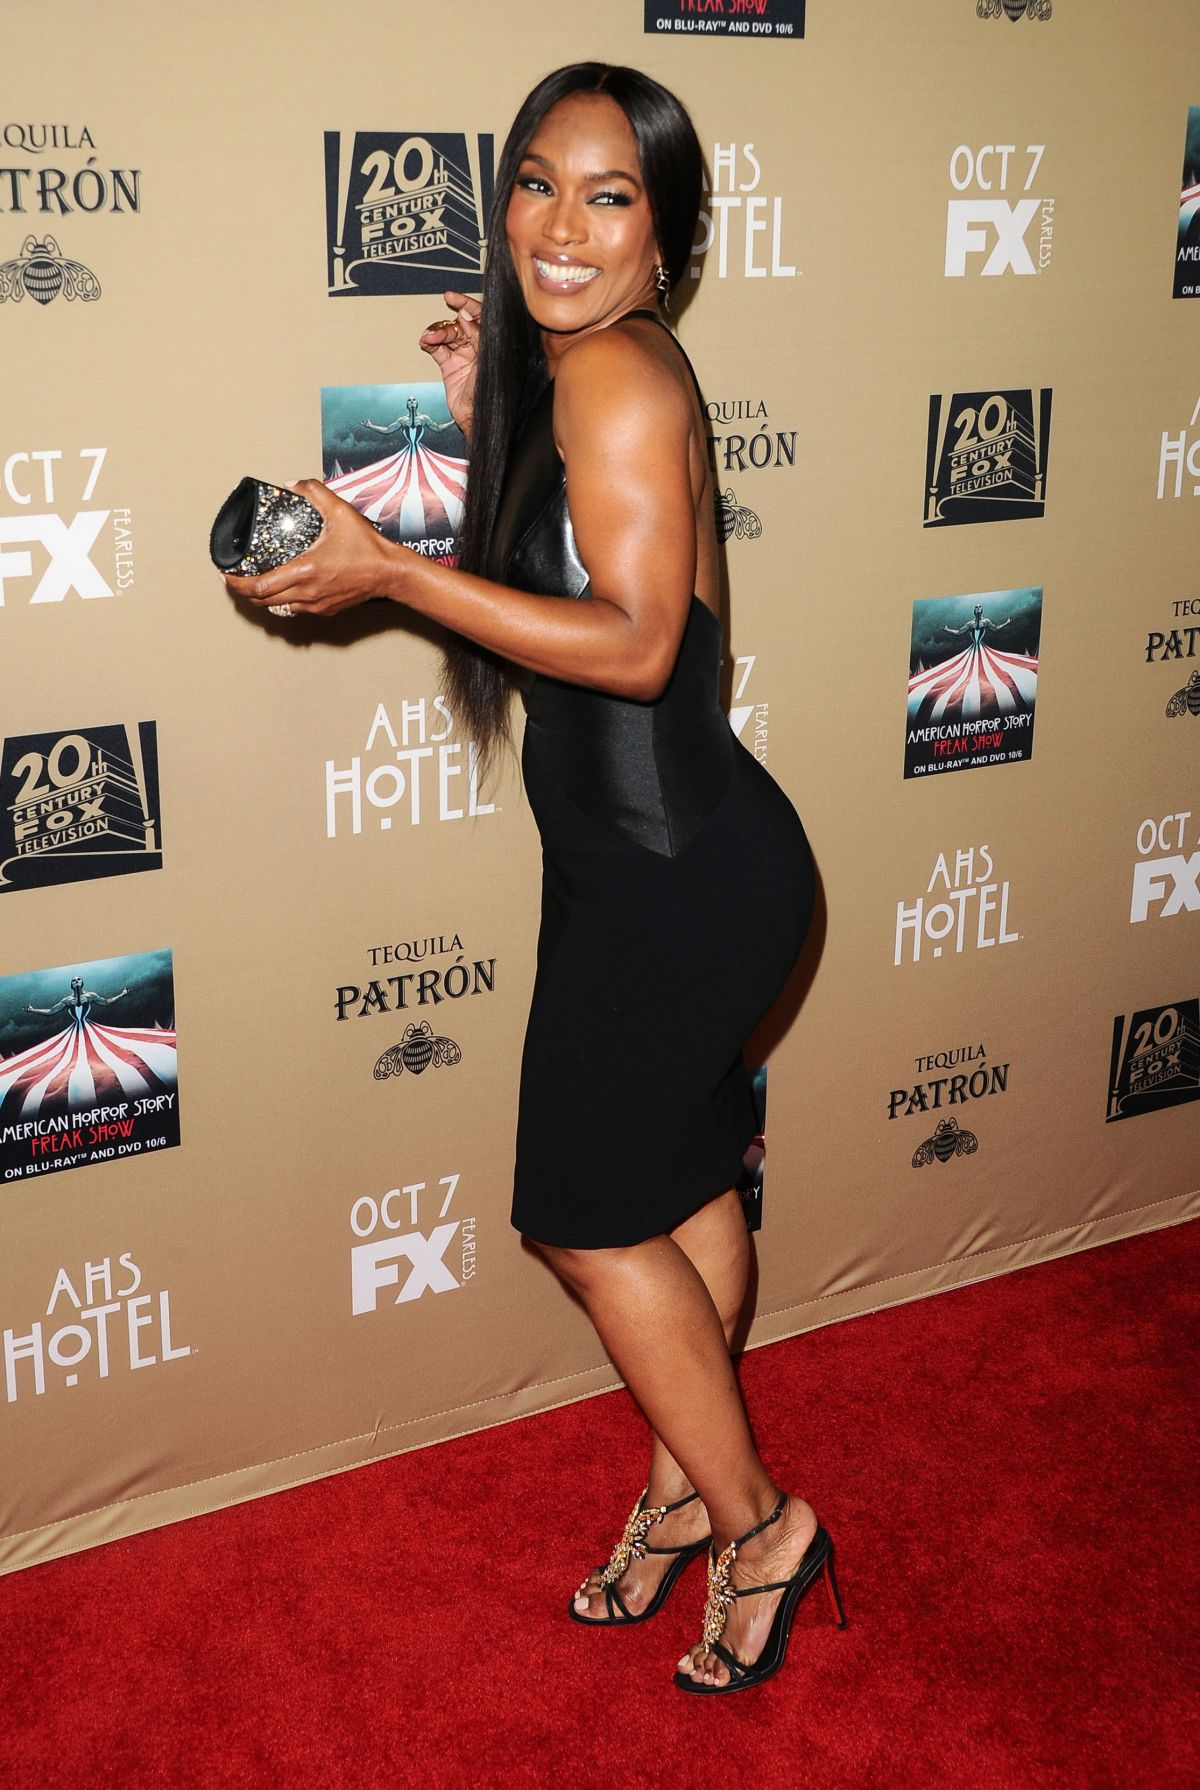 Image result for Angela Bassett ass